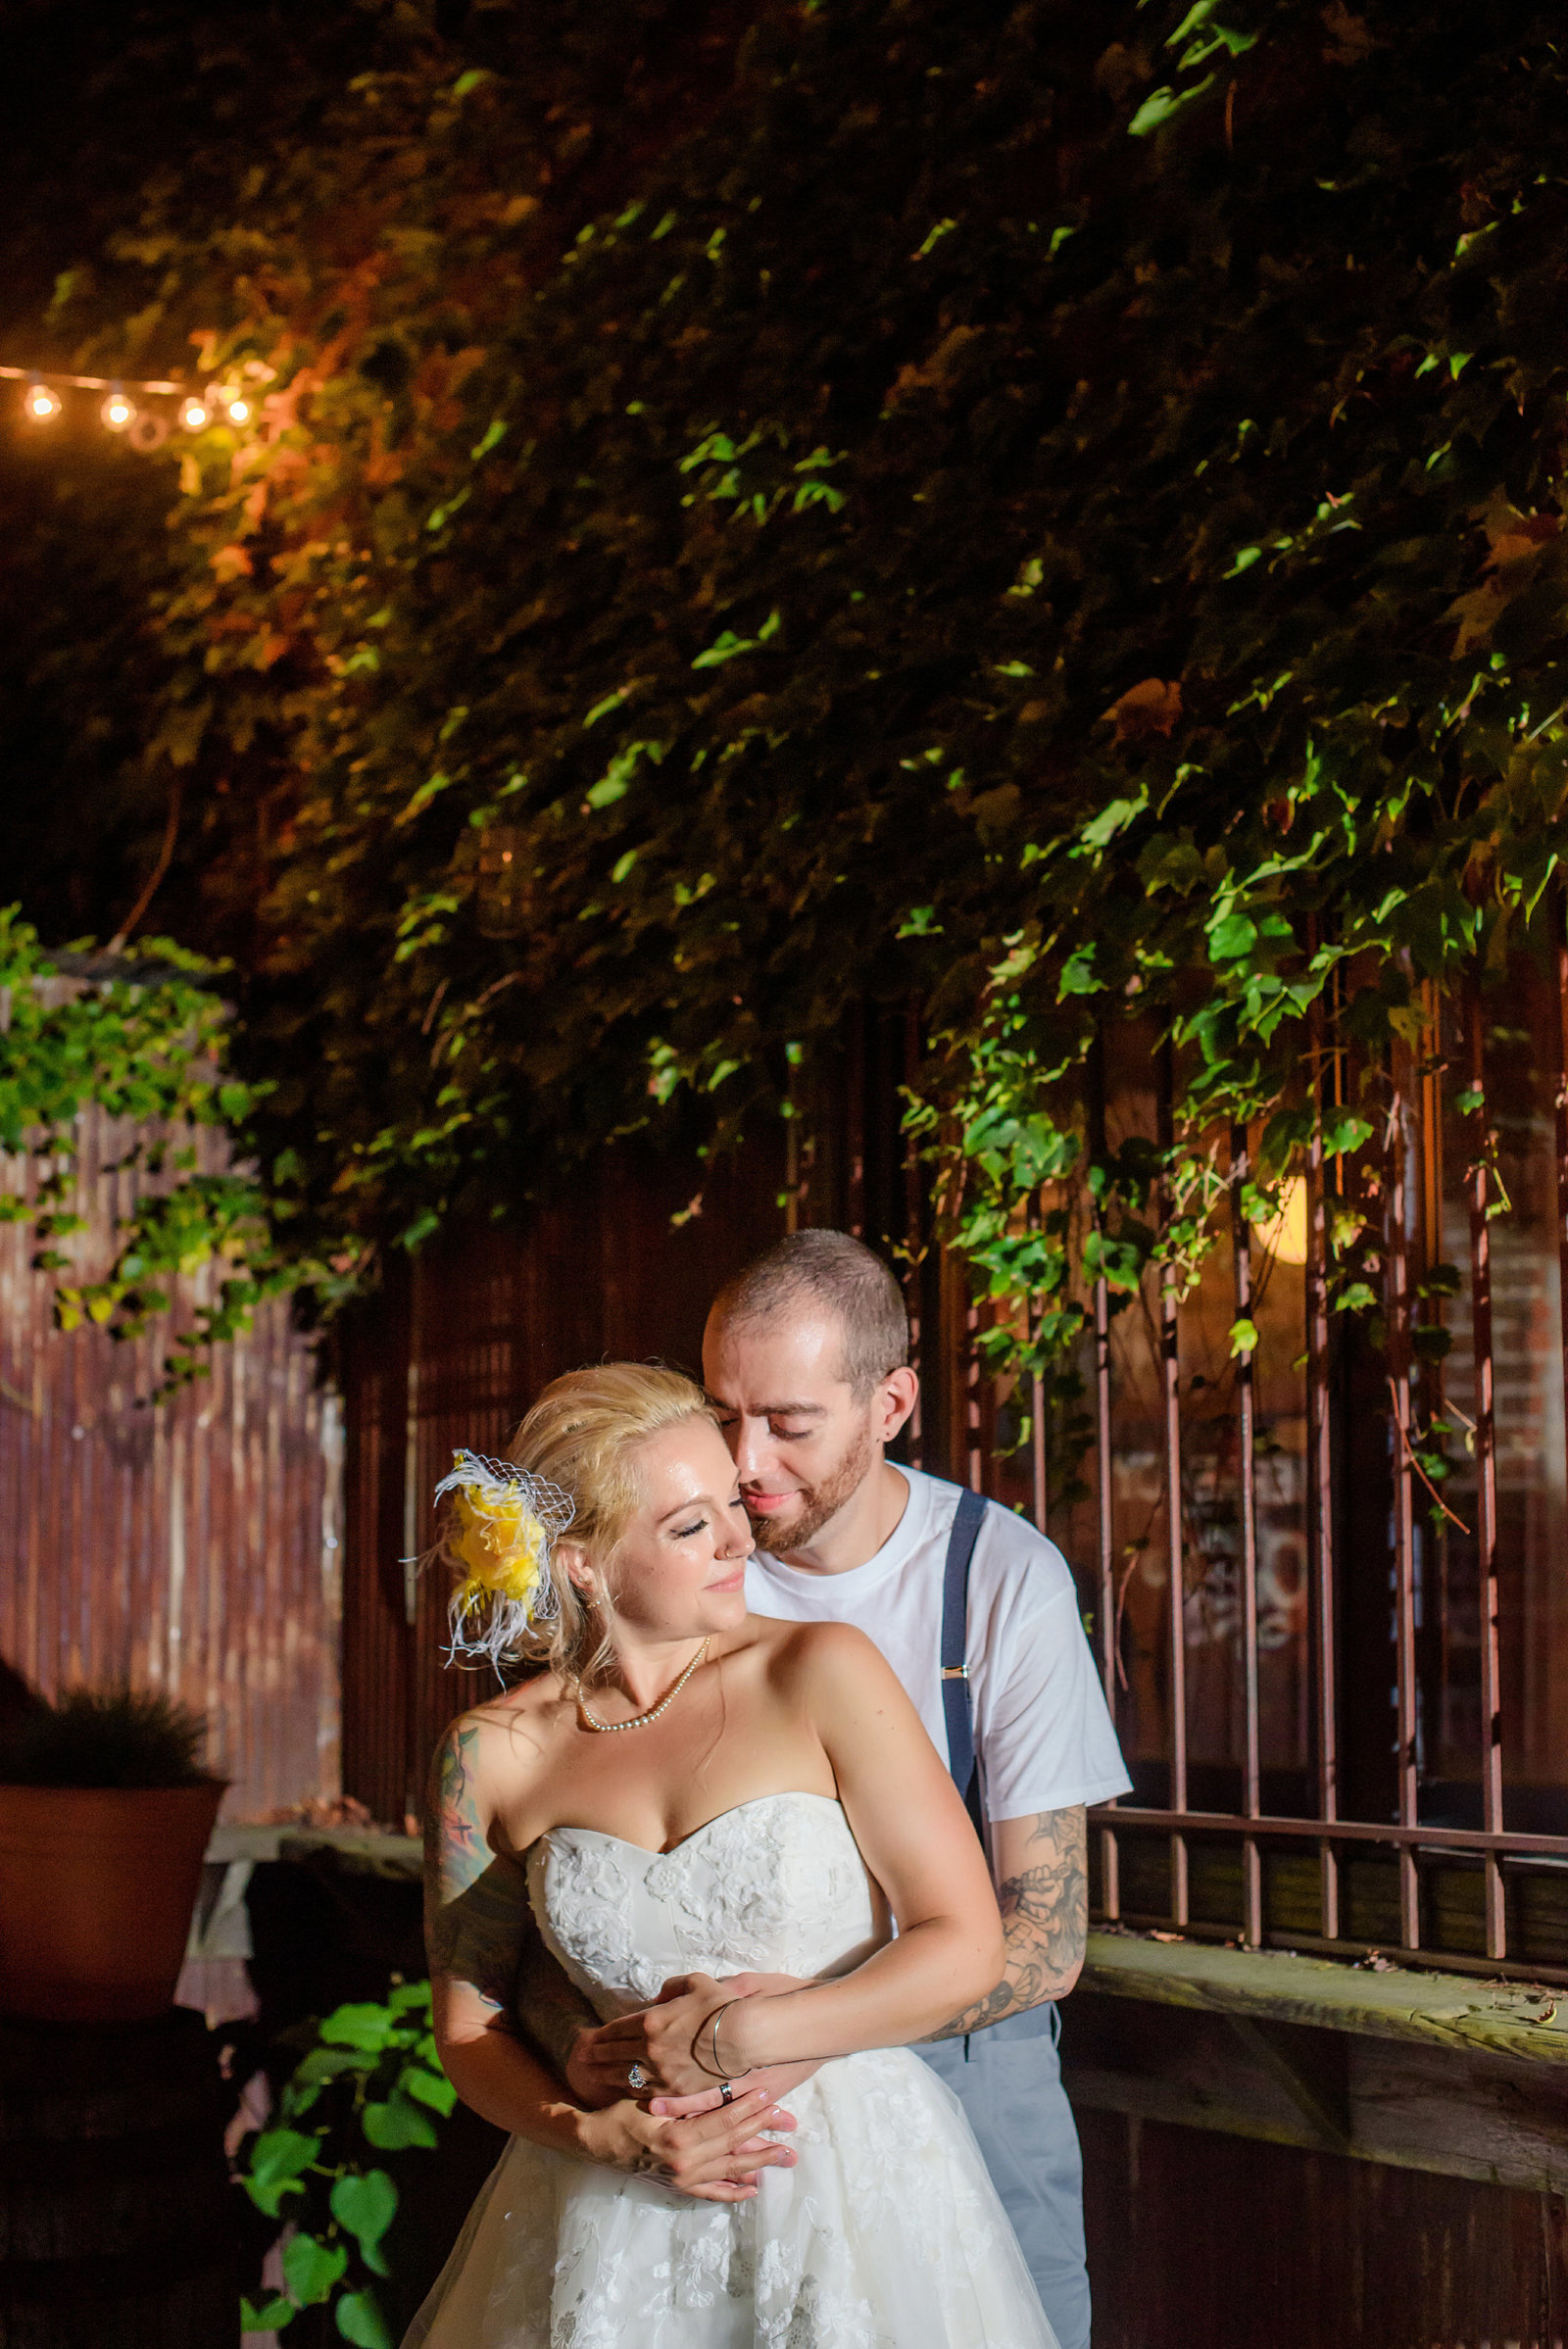 Sam&Zig_Whimsical_NJ_Wedding-168